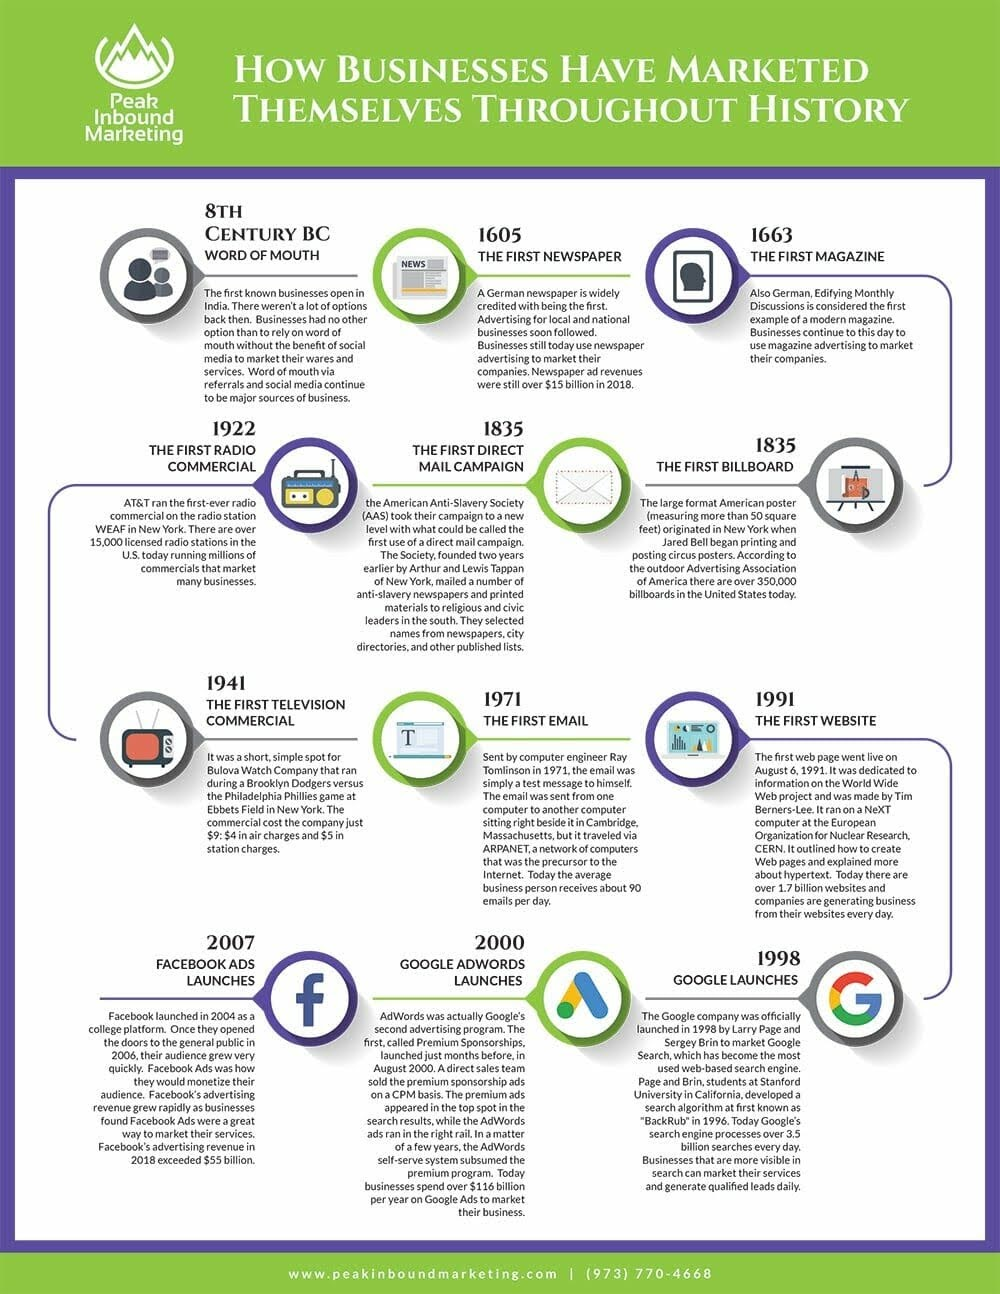 How Businesses Marketed Themselves Throughout History #infographic